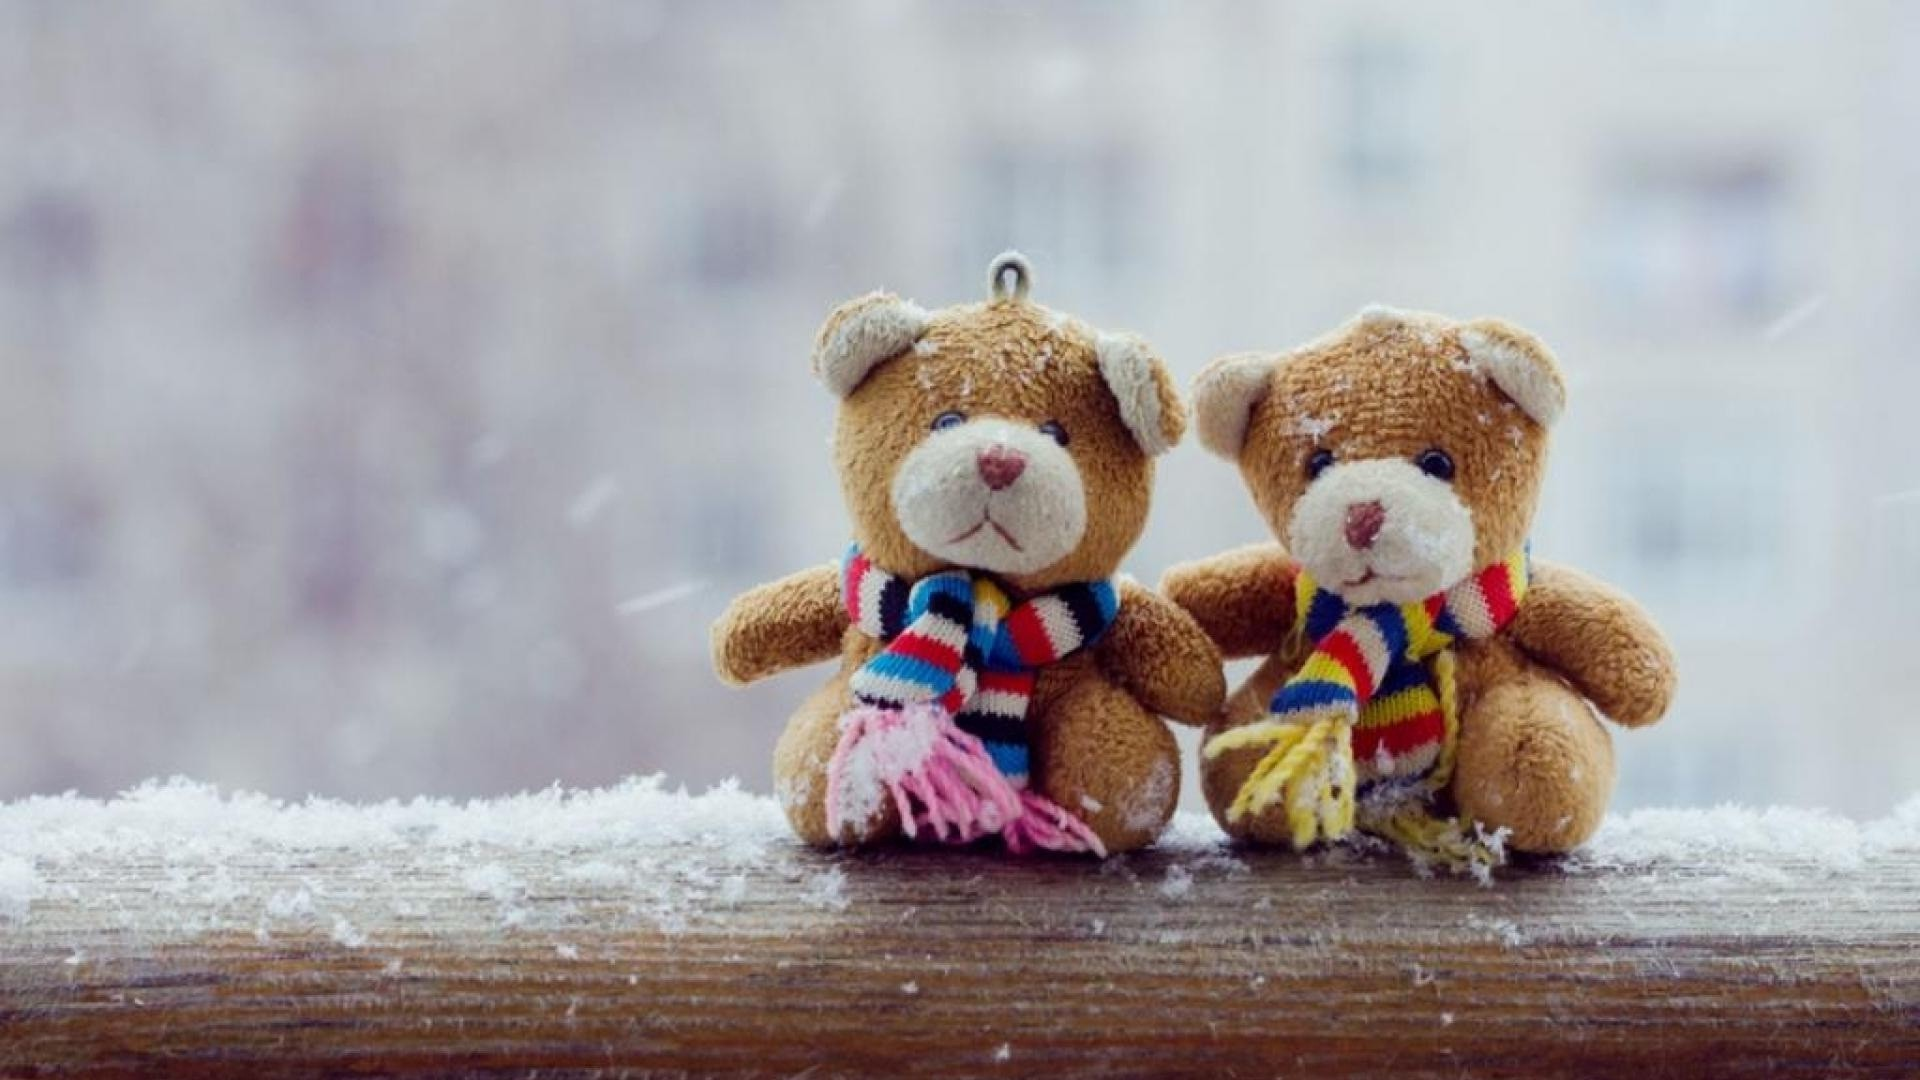 Cute Babies Hd Wallpapers For Mobile Free Download Cute Teddy Bears Wallpapers 59 Images